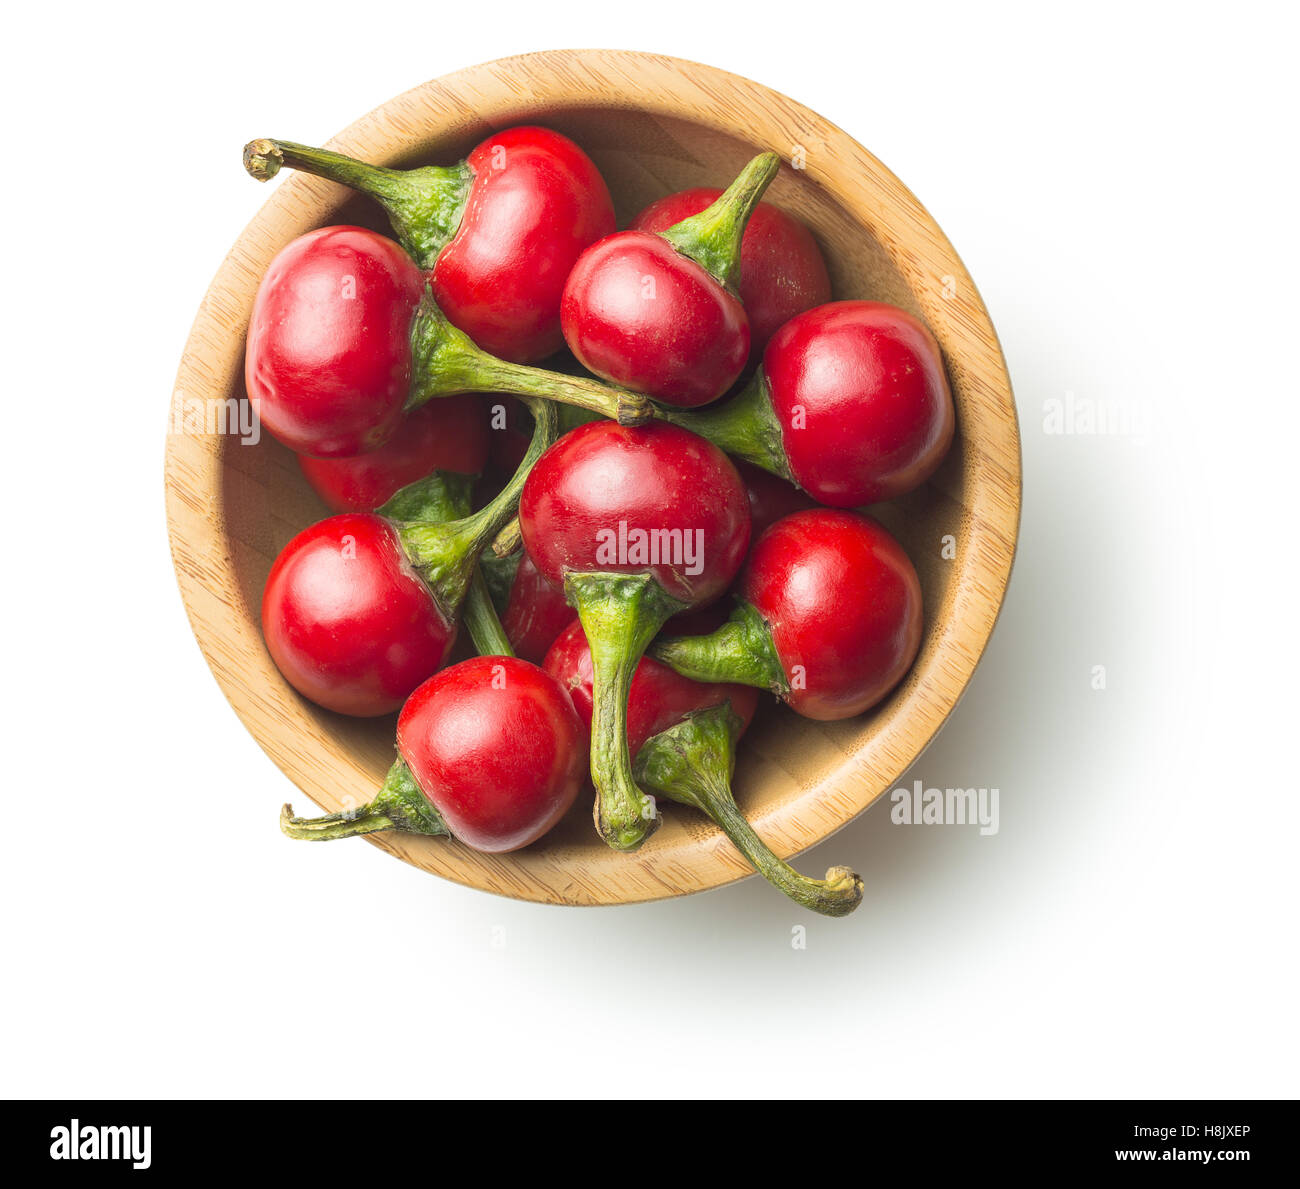 Round red chili peppers in bowl isolated on white background. - Stock Image